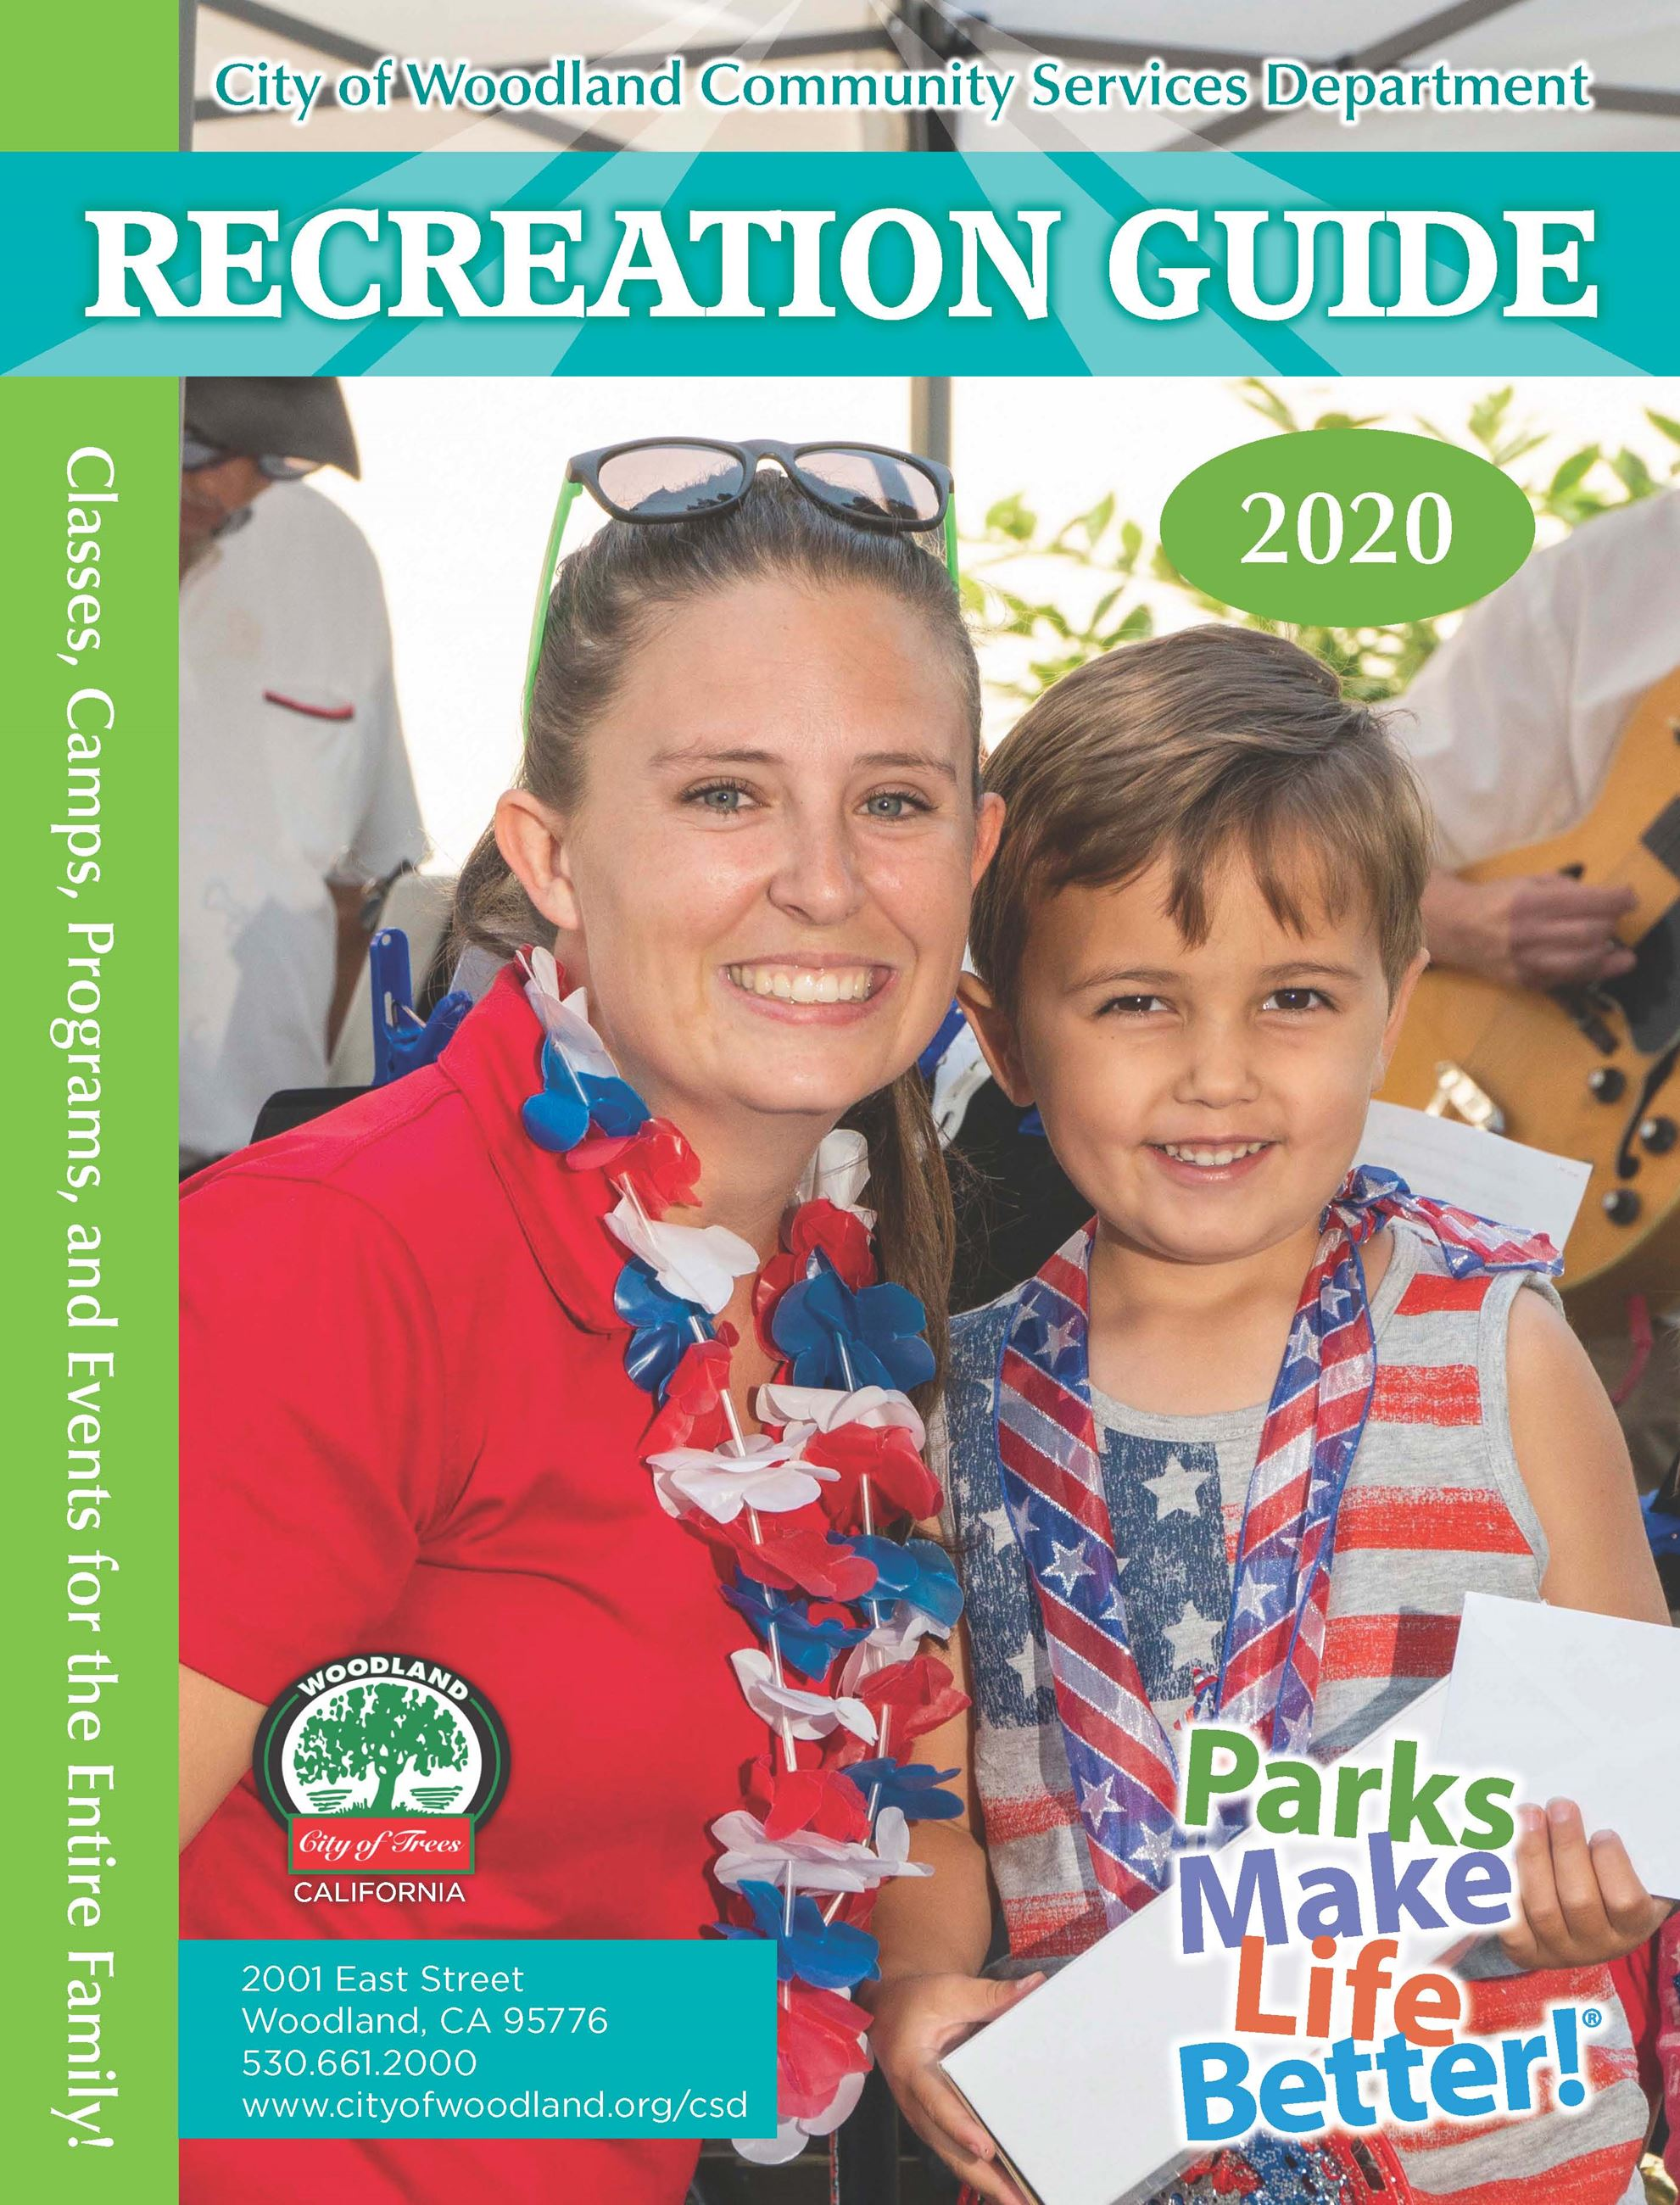 Recreation Guide front cover picture